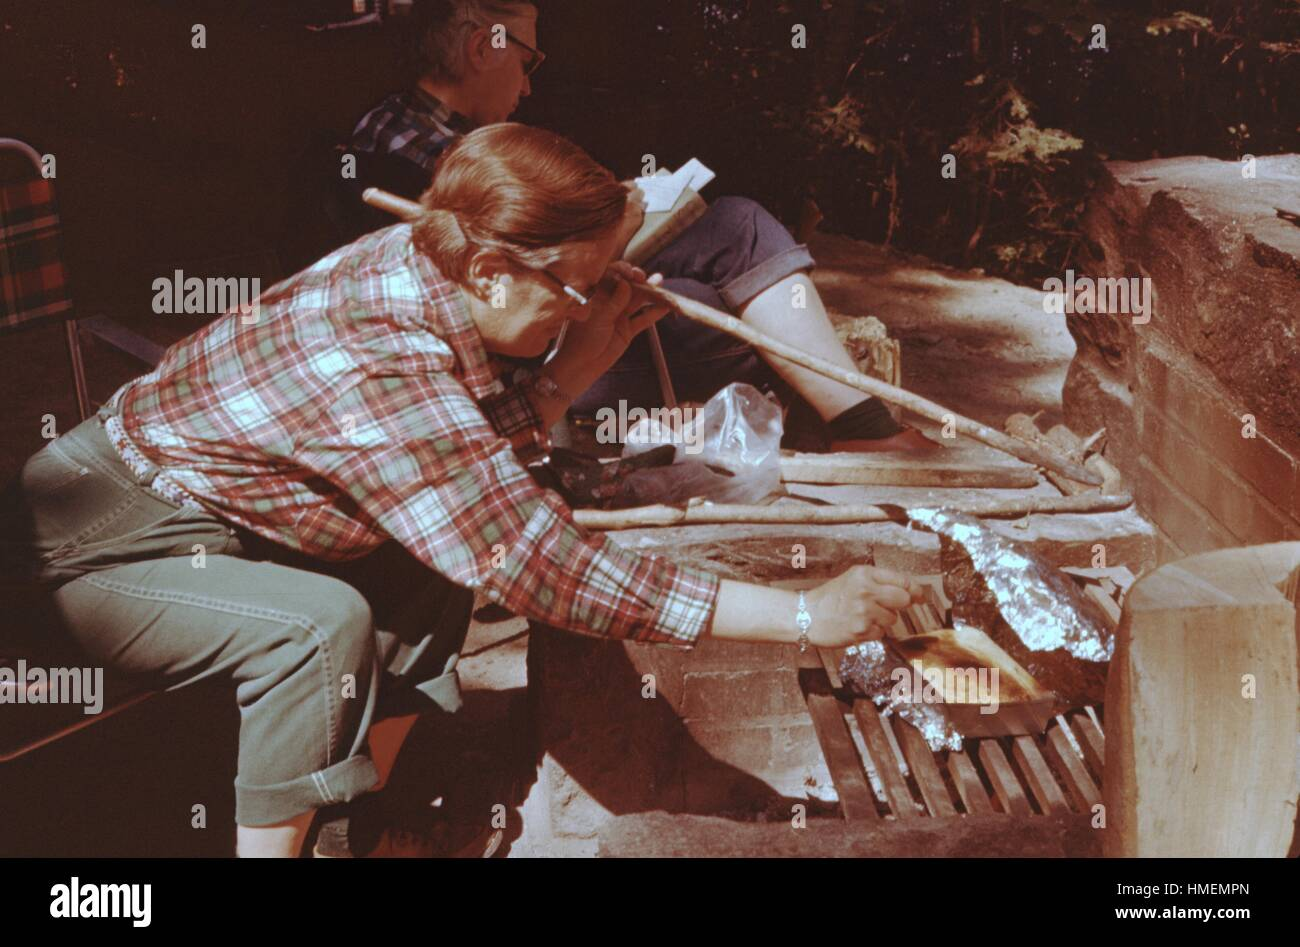 Person reaching towards a dish of food cooked over a charcoal grill during a cooking, holding a stick, Maidstone - Stock Image